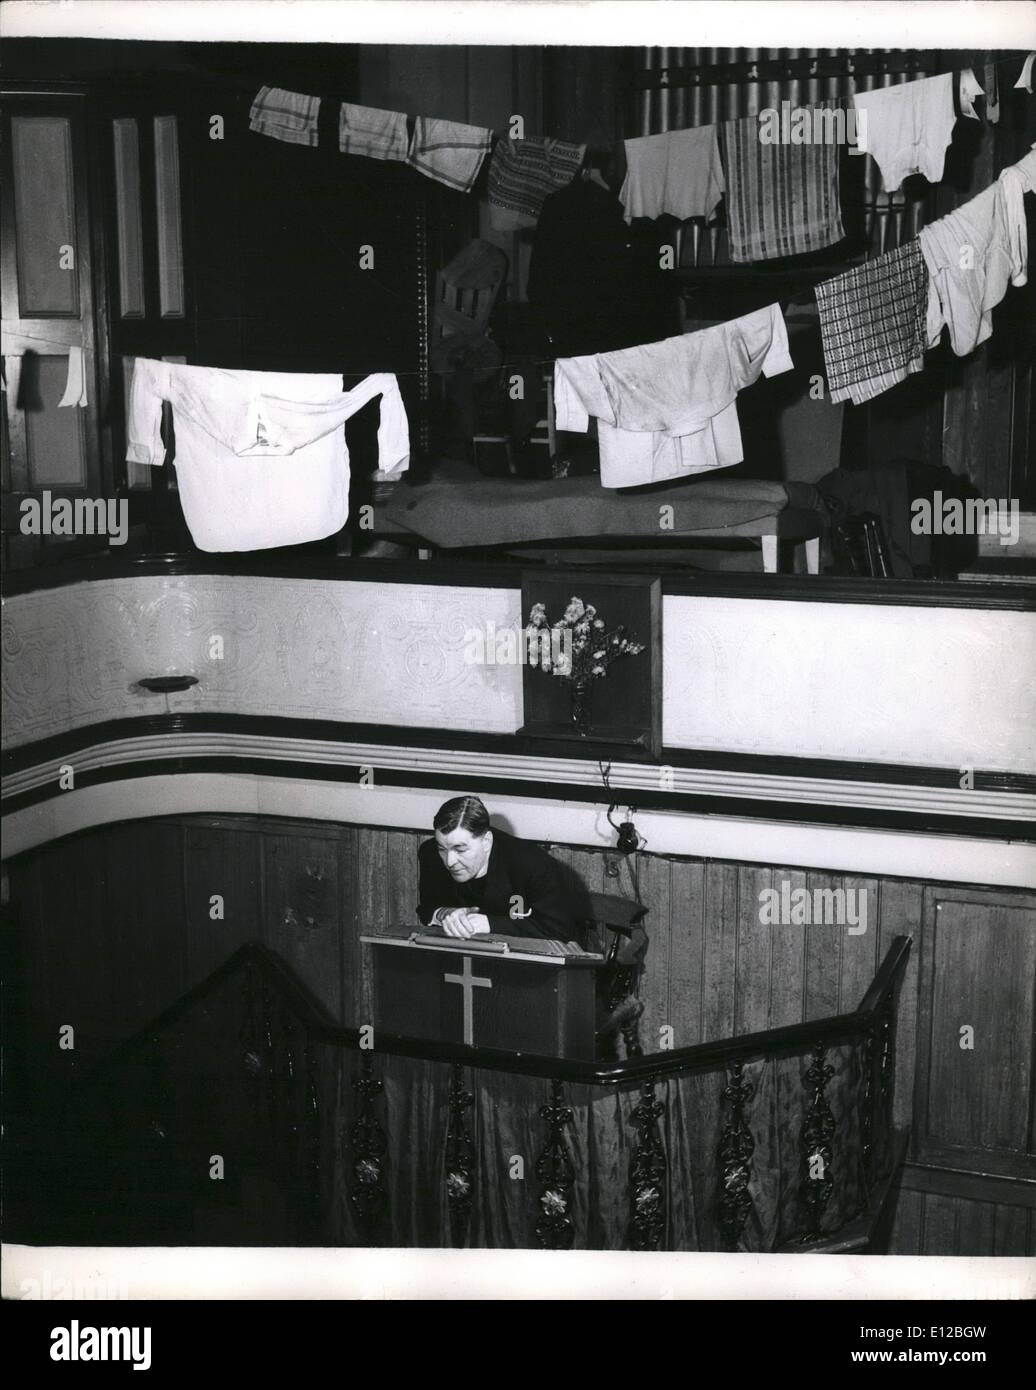 Dec. 09, 2011 - The sermon beneath the washing. The Rev. Bertarm Peake preaches from the pulpit of Golborne Church, Kensington. Before him in the pews are his flock , many of them former prisoners. Above him, not quite hidden, in the gallery is their washing hanging out to dry, and their beds. The pulpit was presented to the church by the brother of a professional Atheist who made this last request to the Rev. Peake when he was dying. - Stock Image